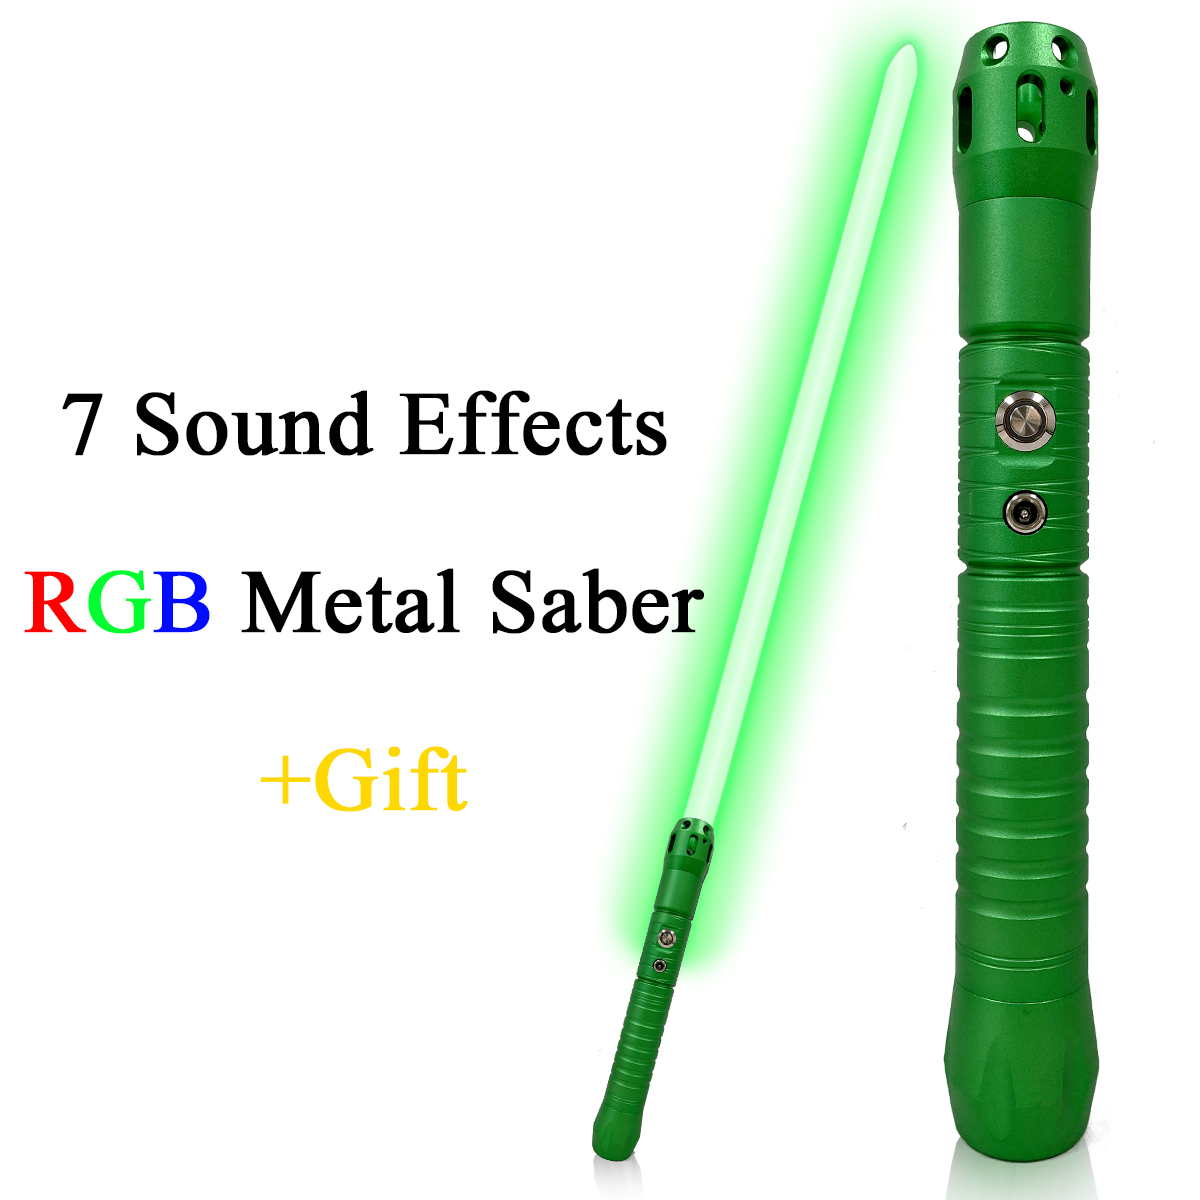 Original Movie Sound Effects Laser Sword Blaster Cosplay Toy Green Metal Handle Lightsaber Automatic Color Changing Light Saber